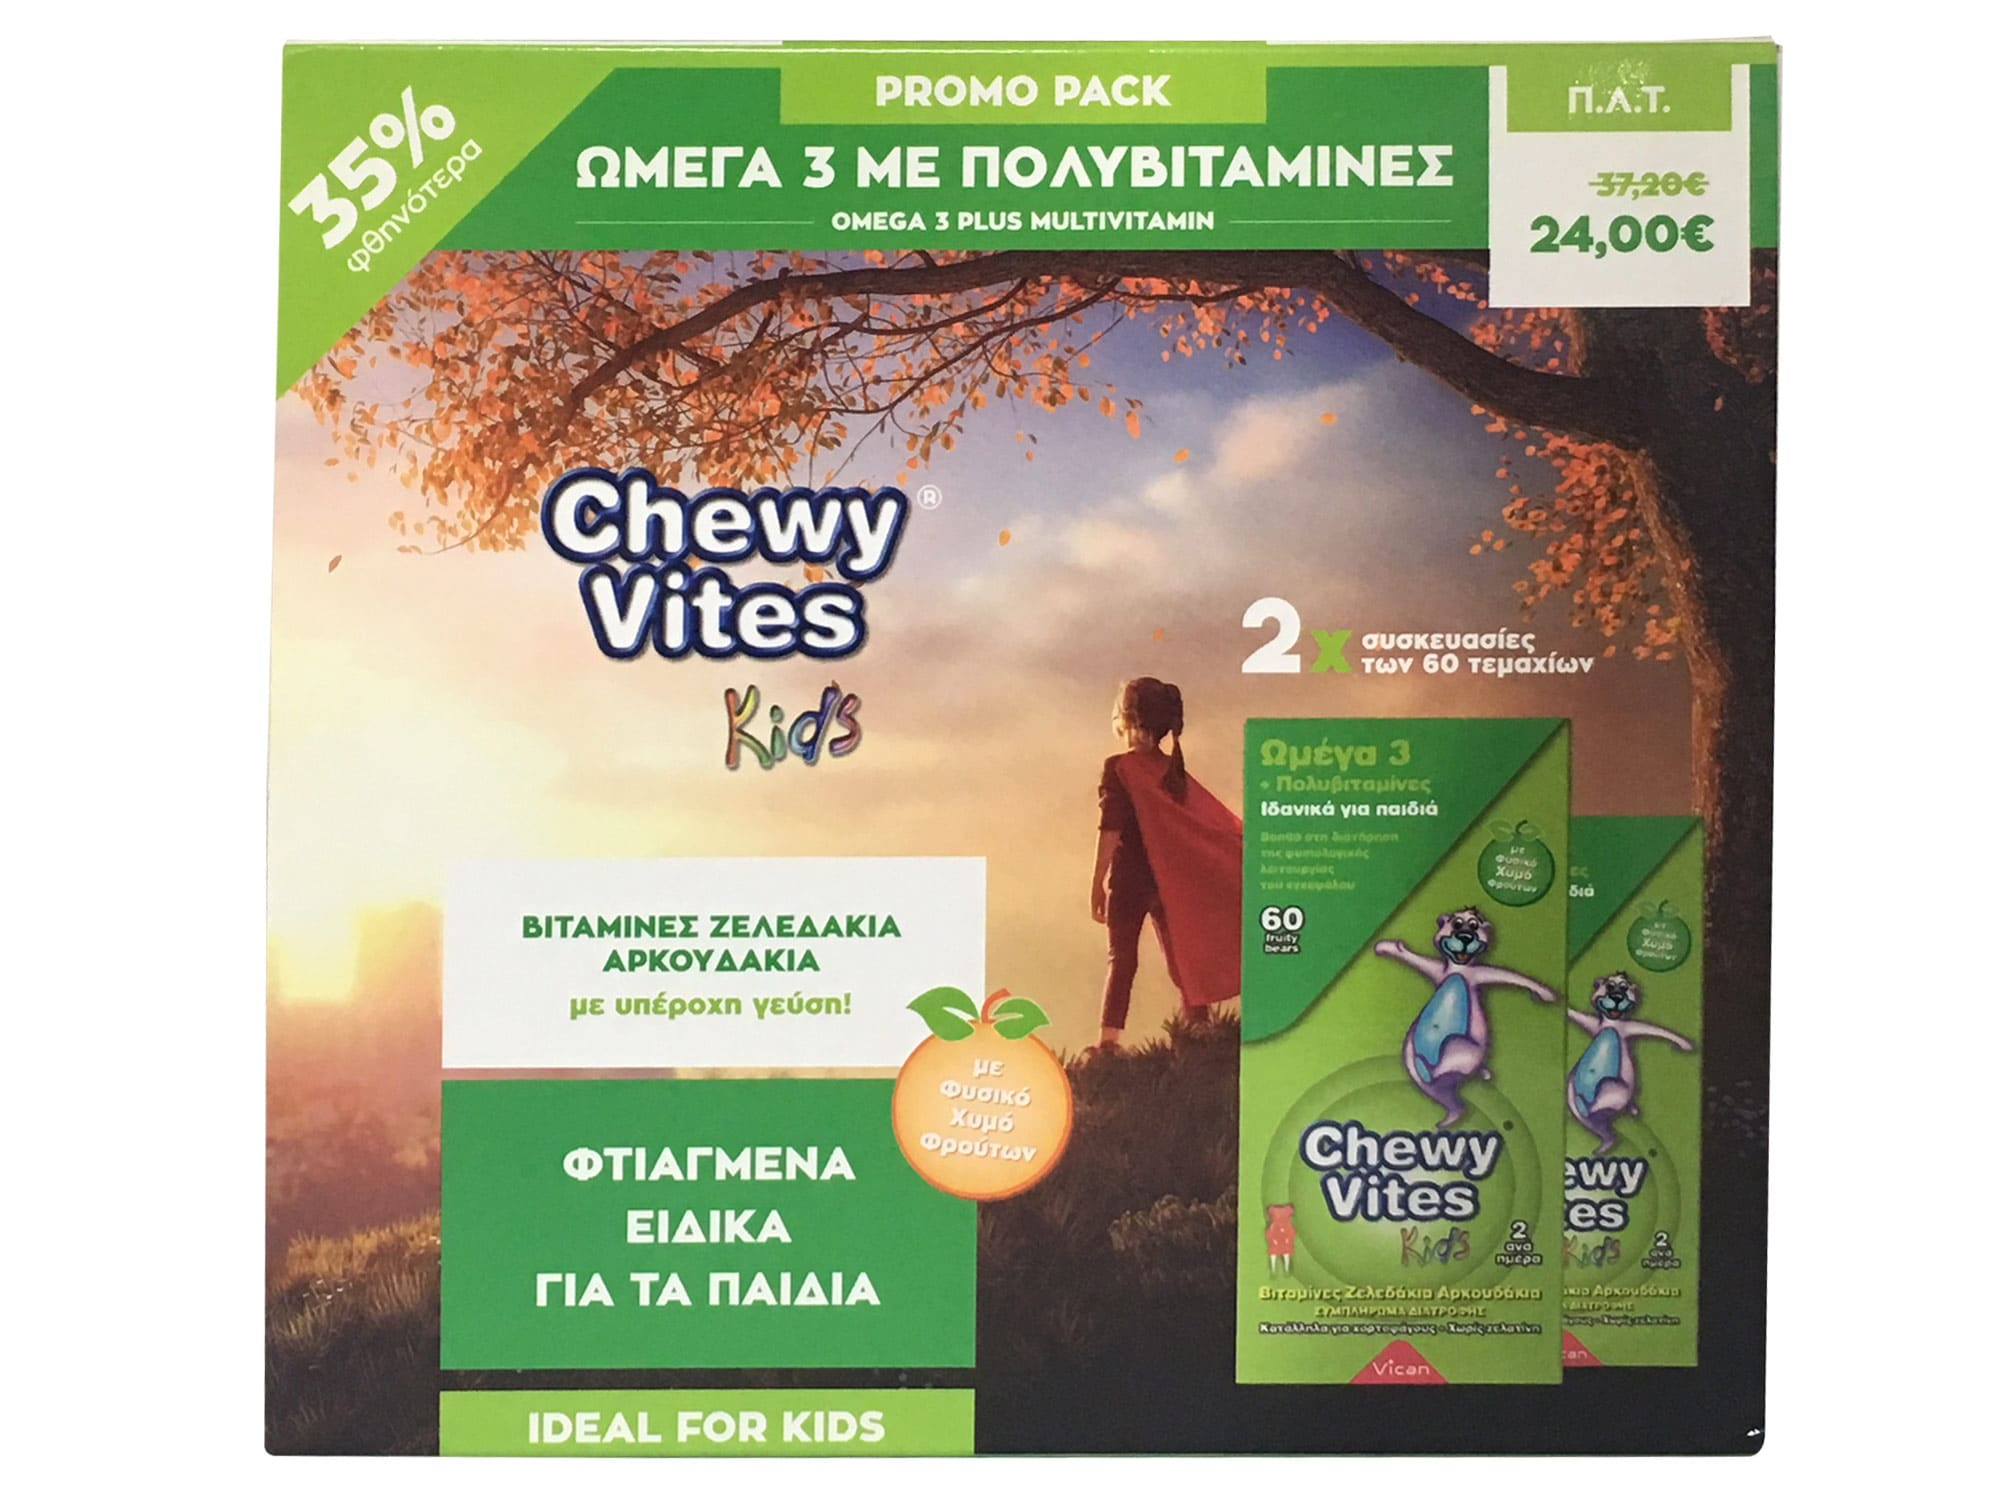 Vican Chewy Vites Jelly Bears Omega 3 + Multivitamin PROMO PACK  Πολυβιταμινούχα Ζελεδάκια με Ω3 για Παιδιά όλων των ηλικιών, 2 x 60 gummies